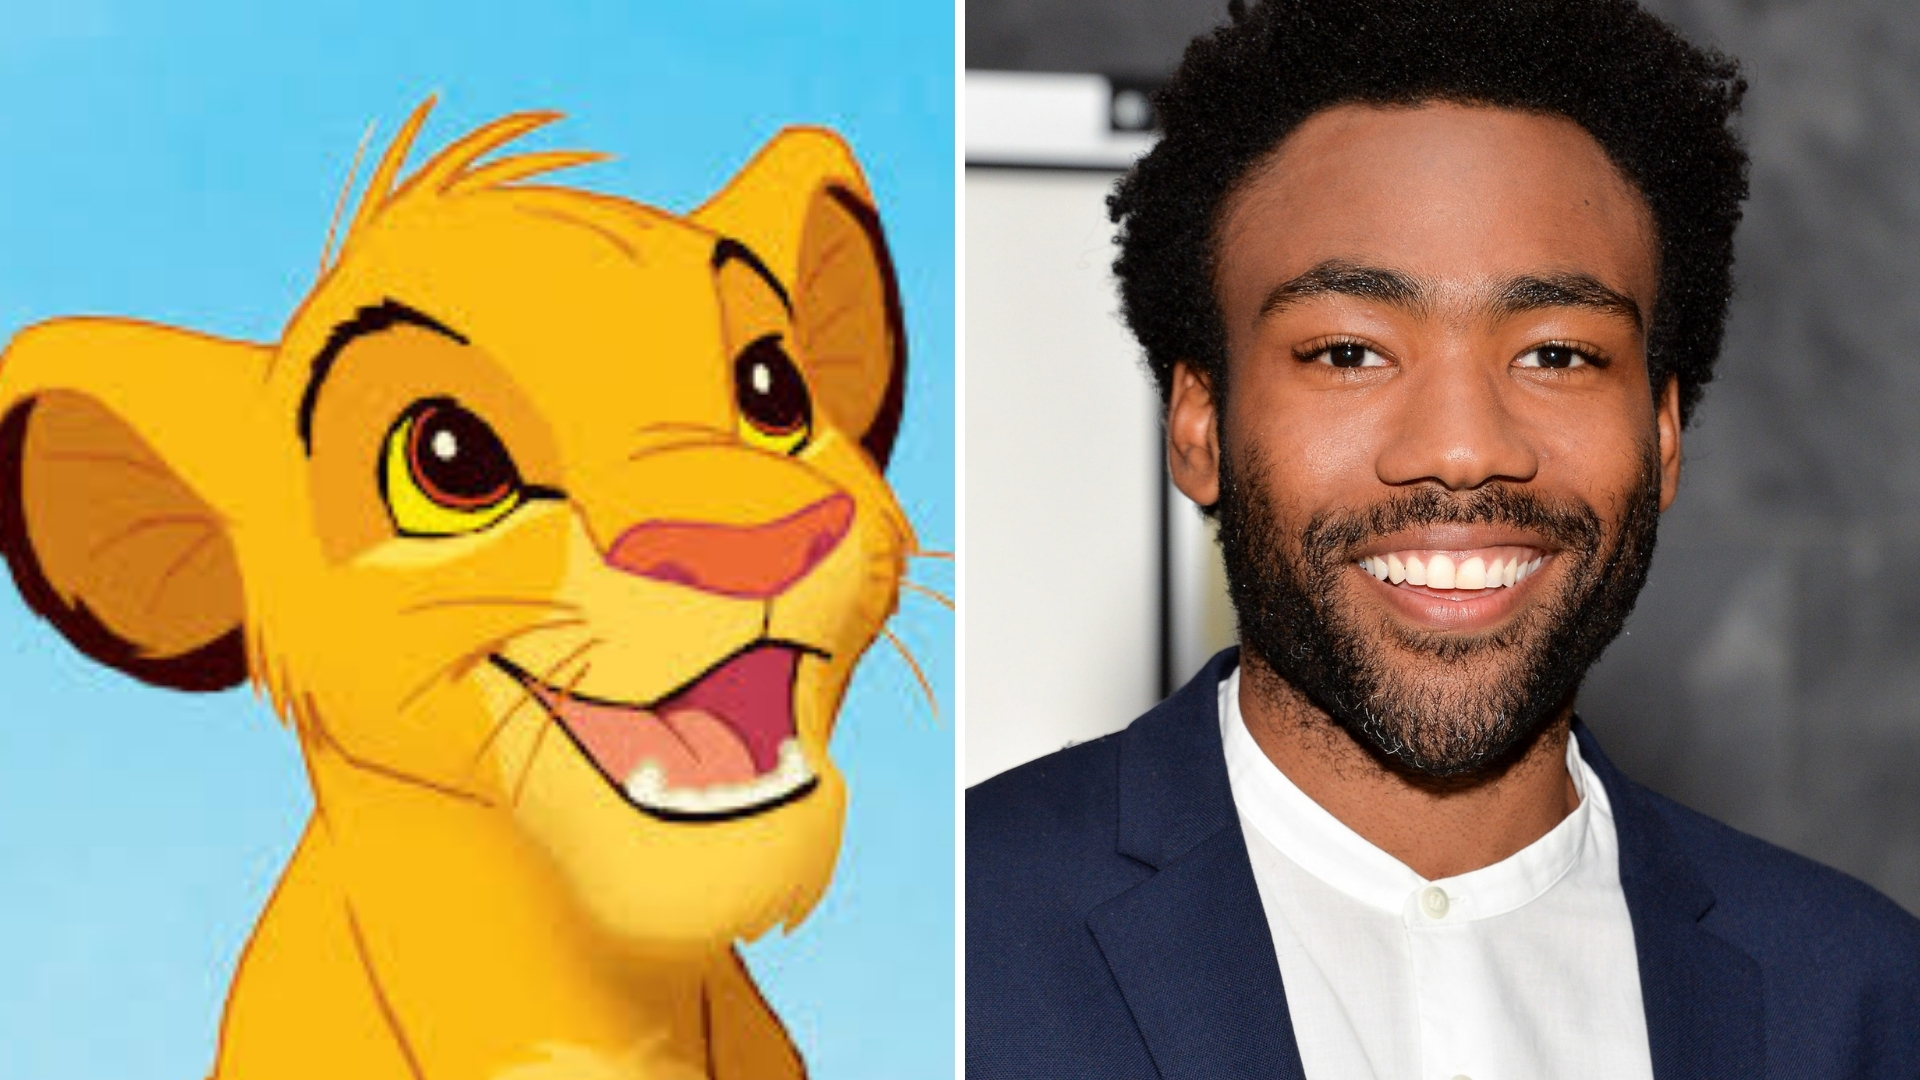 Disney's Live-Action 'Lion King' Trailer Released